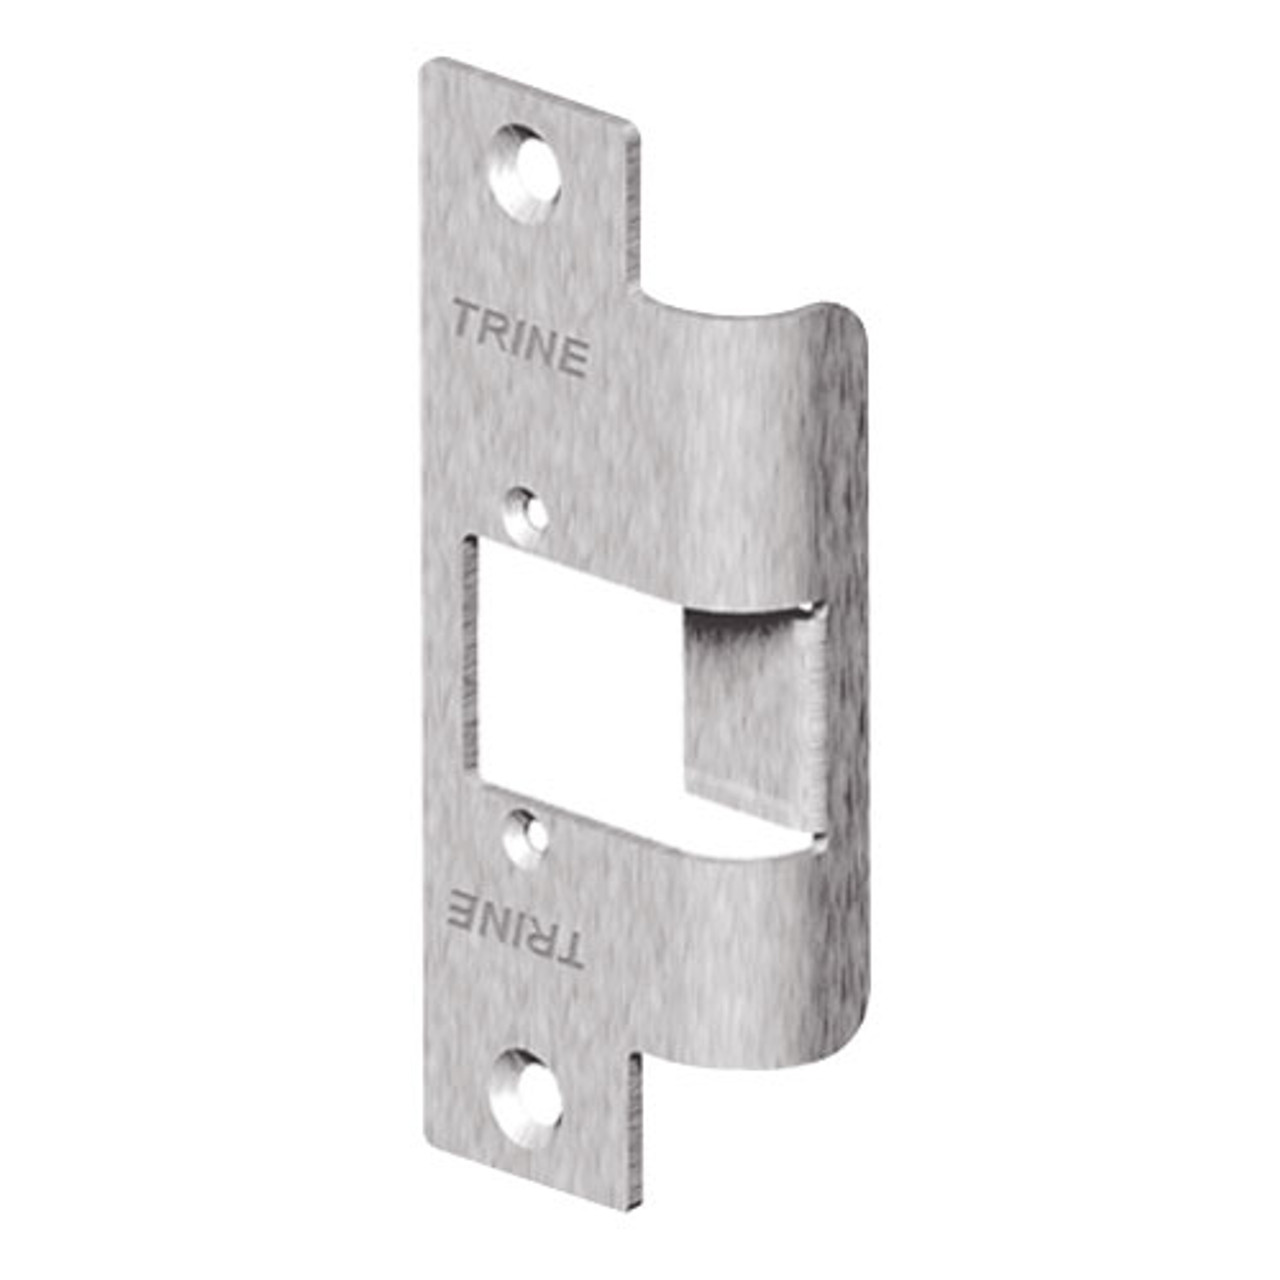 478LO-RD-US32D Trine 3000 Series Faceplate with Radiused Corners in Satin Stainless Steel Finish